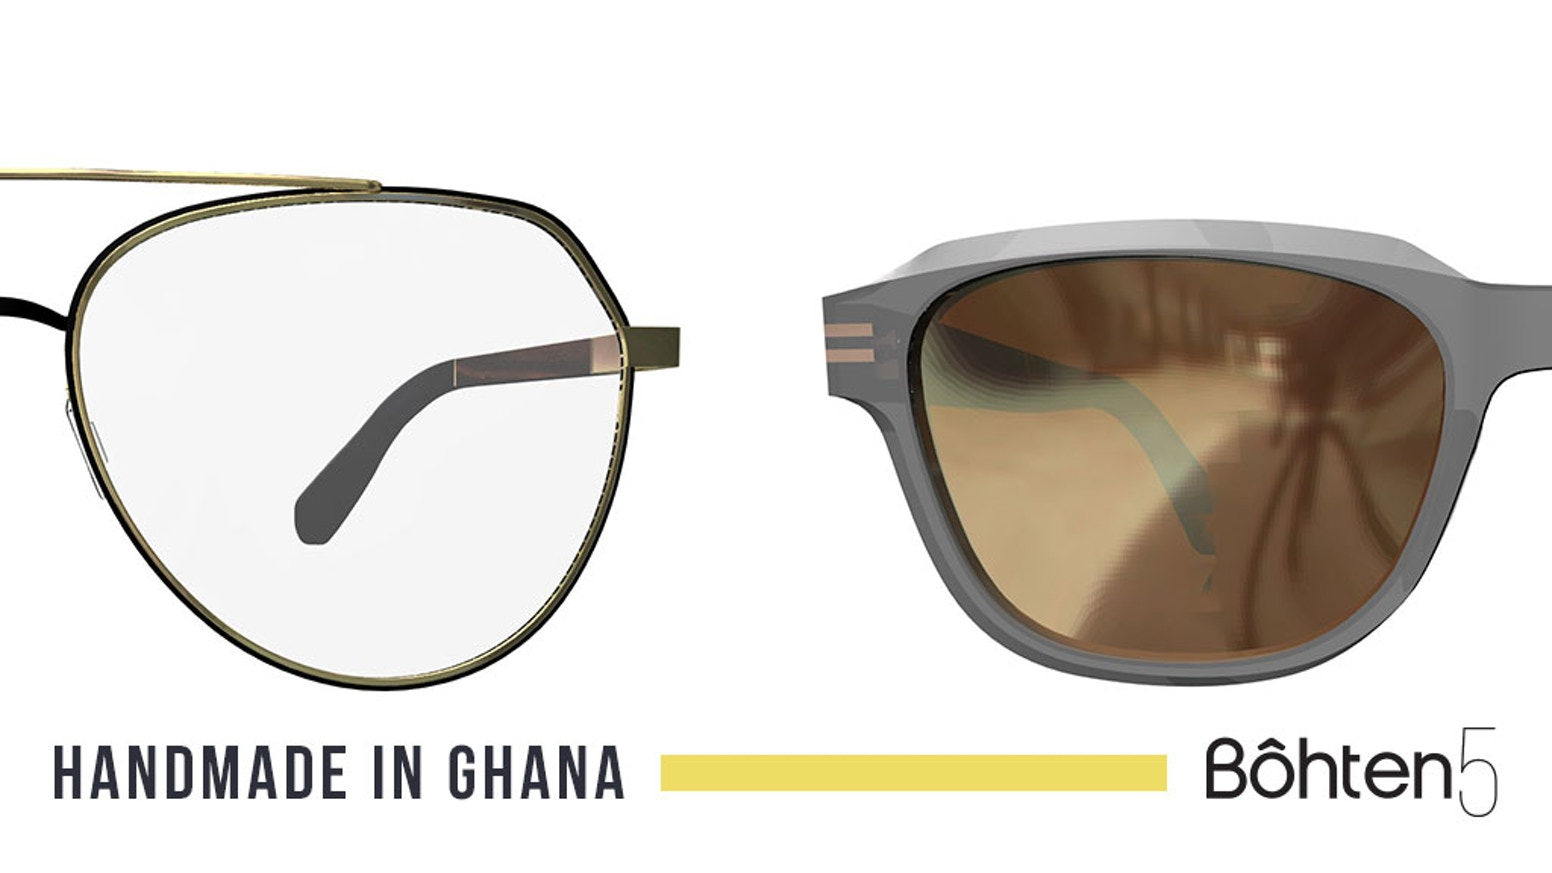 Made from reclaimed african wood, support eyewear production in Ghana with our new collection Bôhten5 to create fair paying jobs